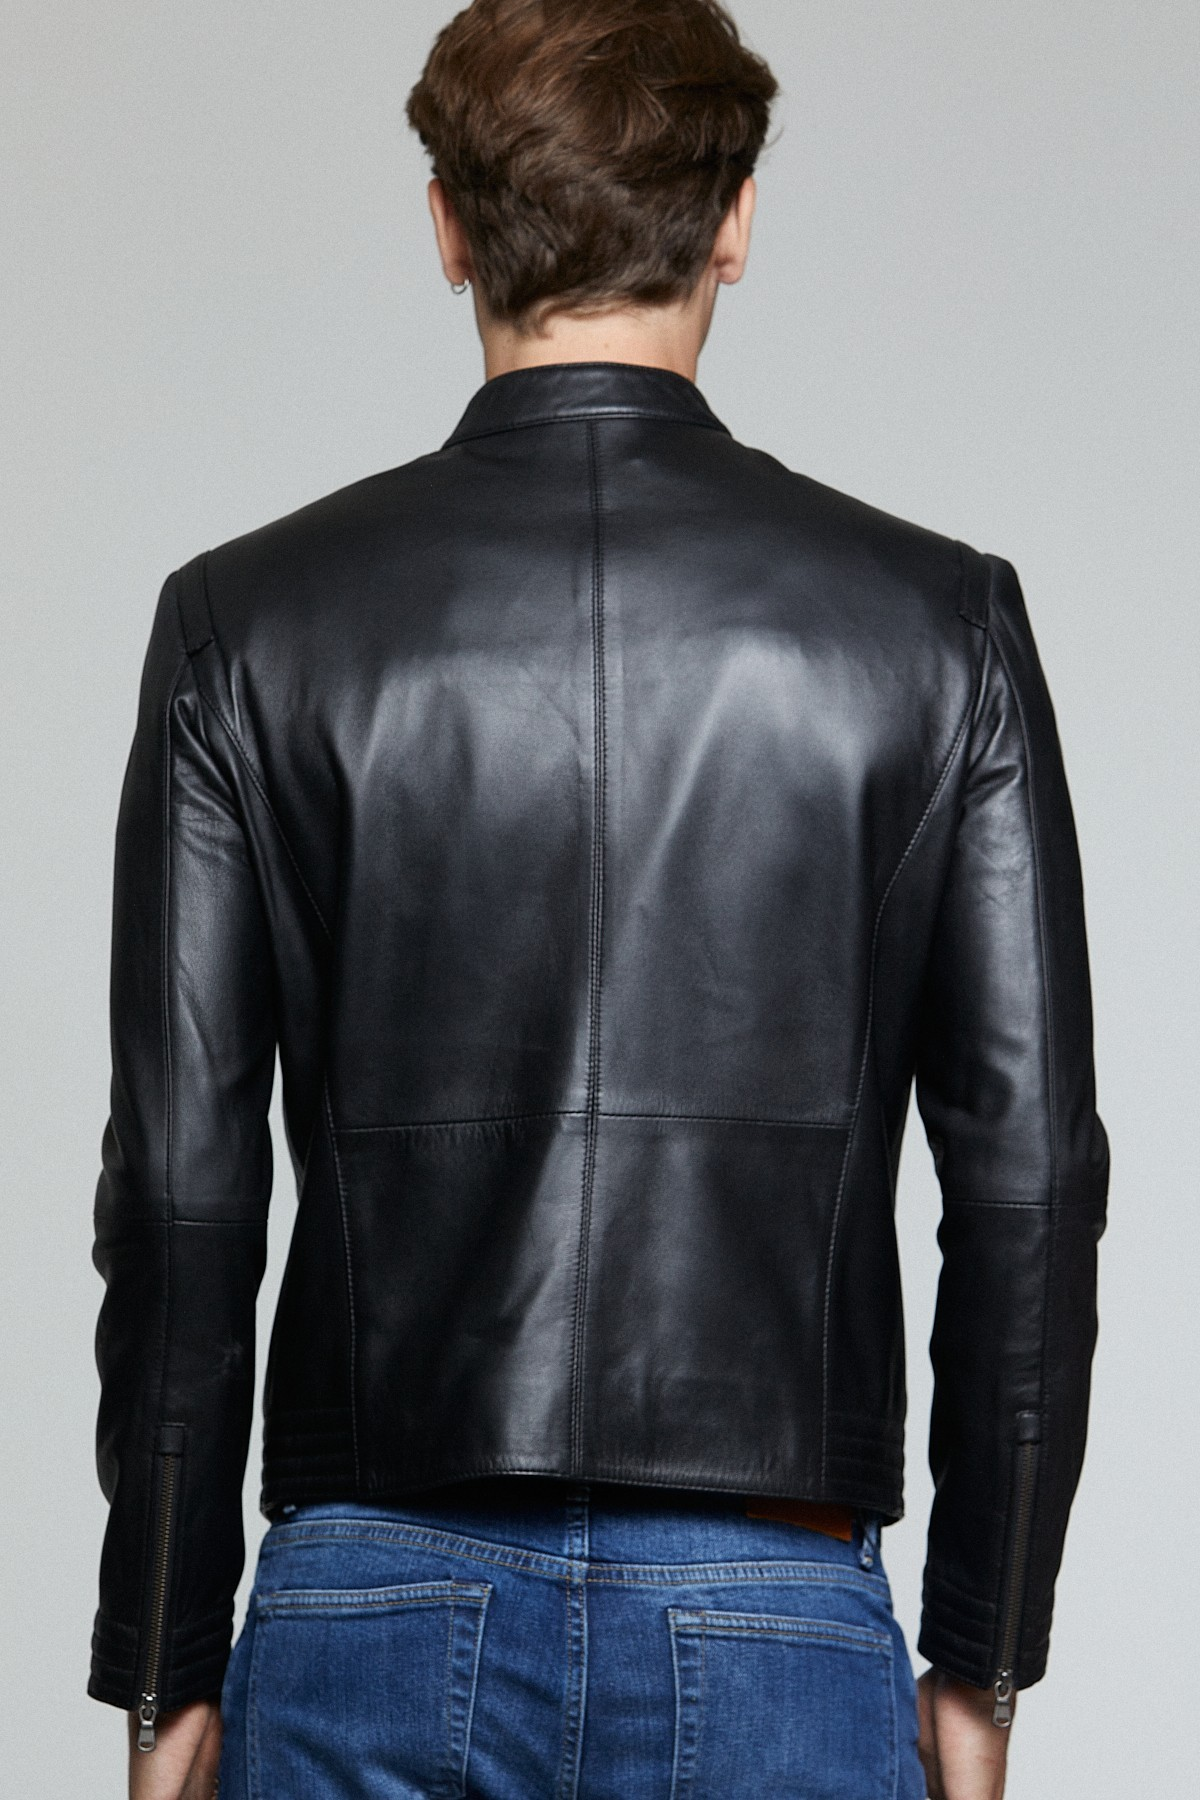 Leather Jacket For Winter